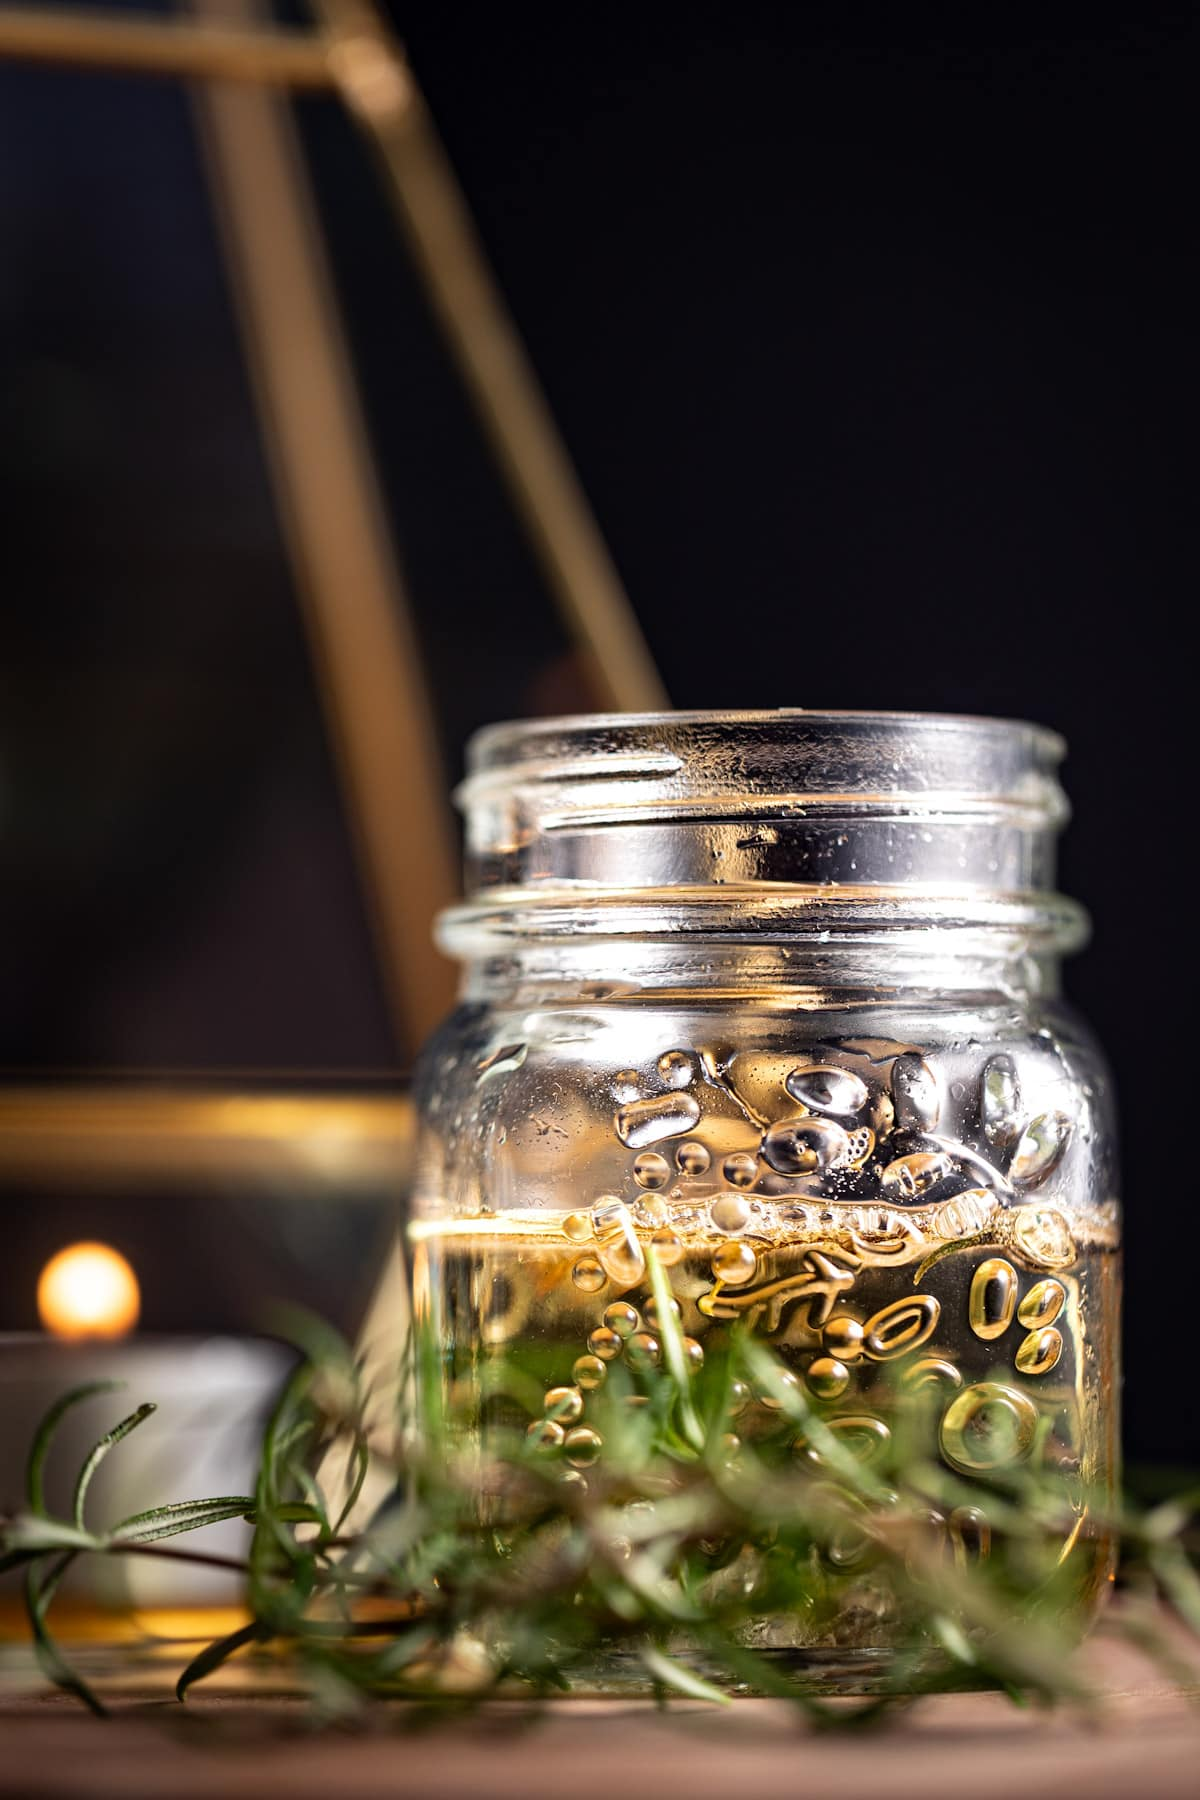 Syrup in a small glass jar, with fresh rosemary herbs in front of it, on a black background.